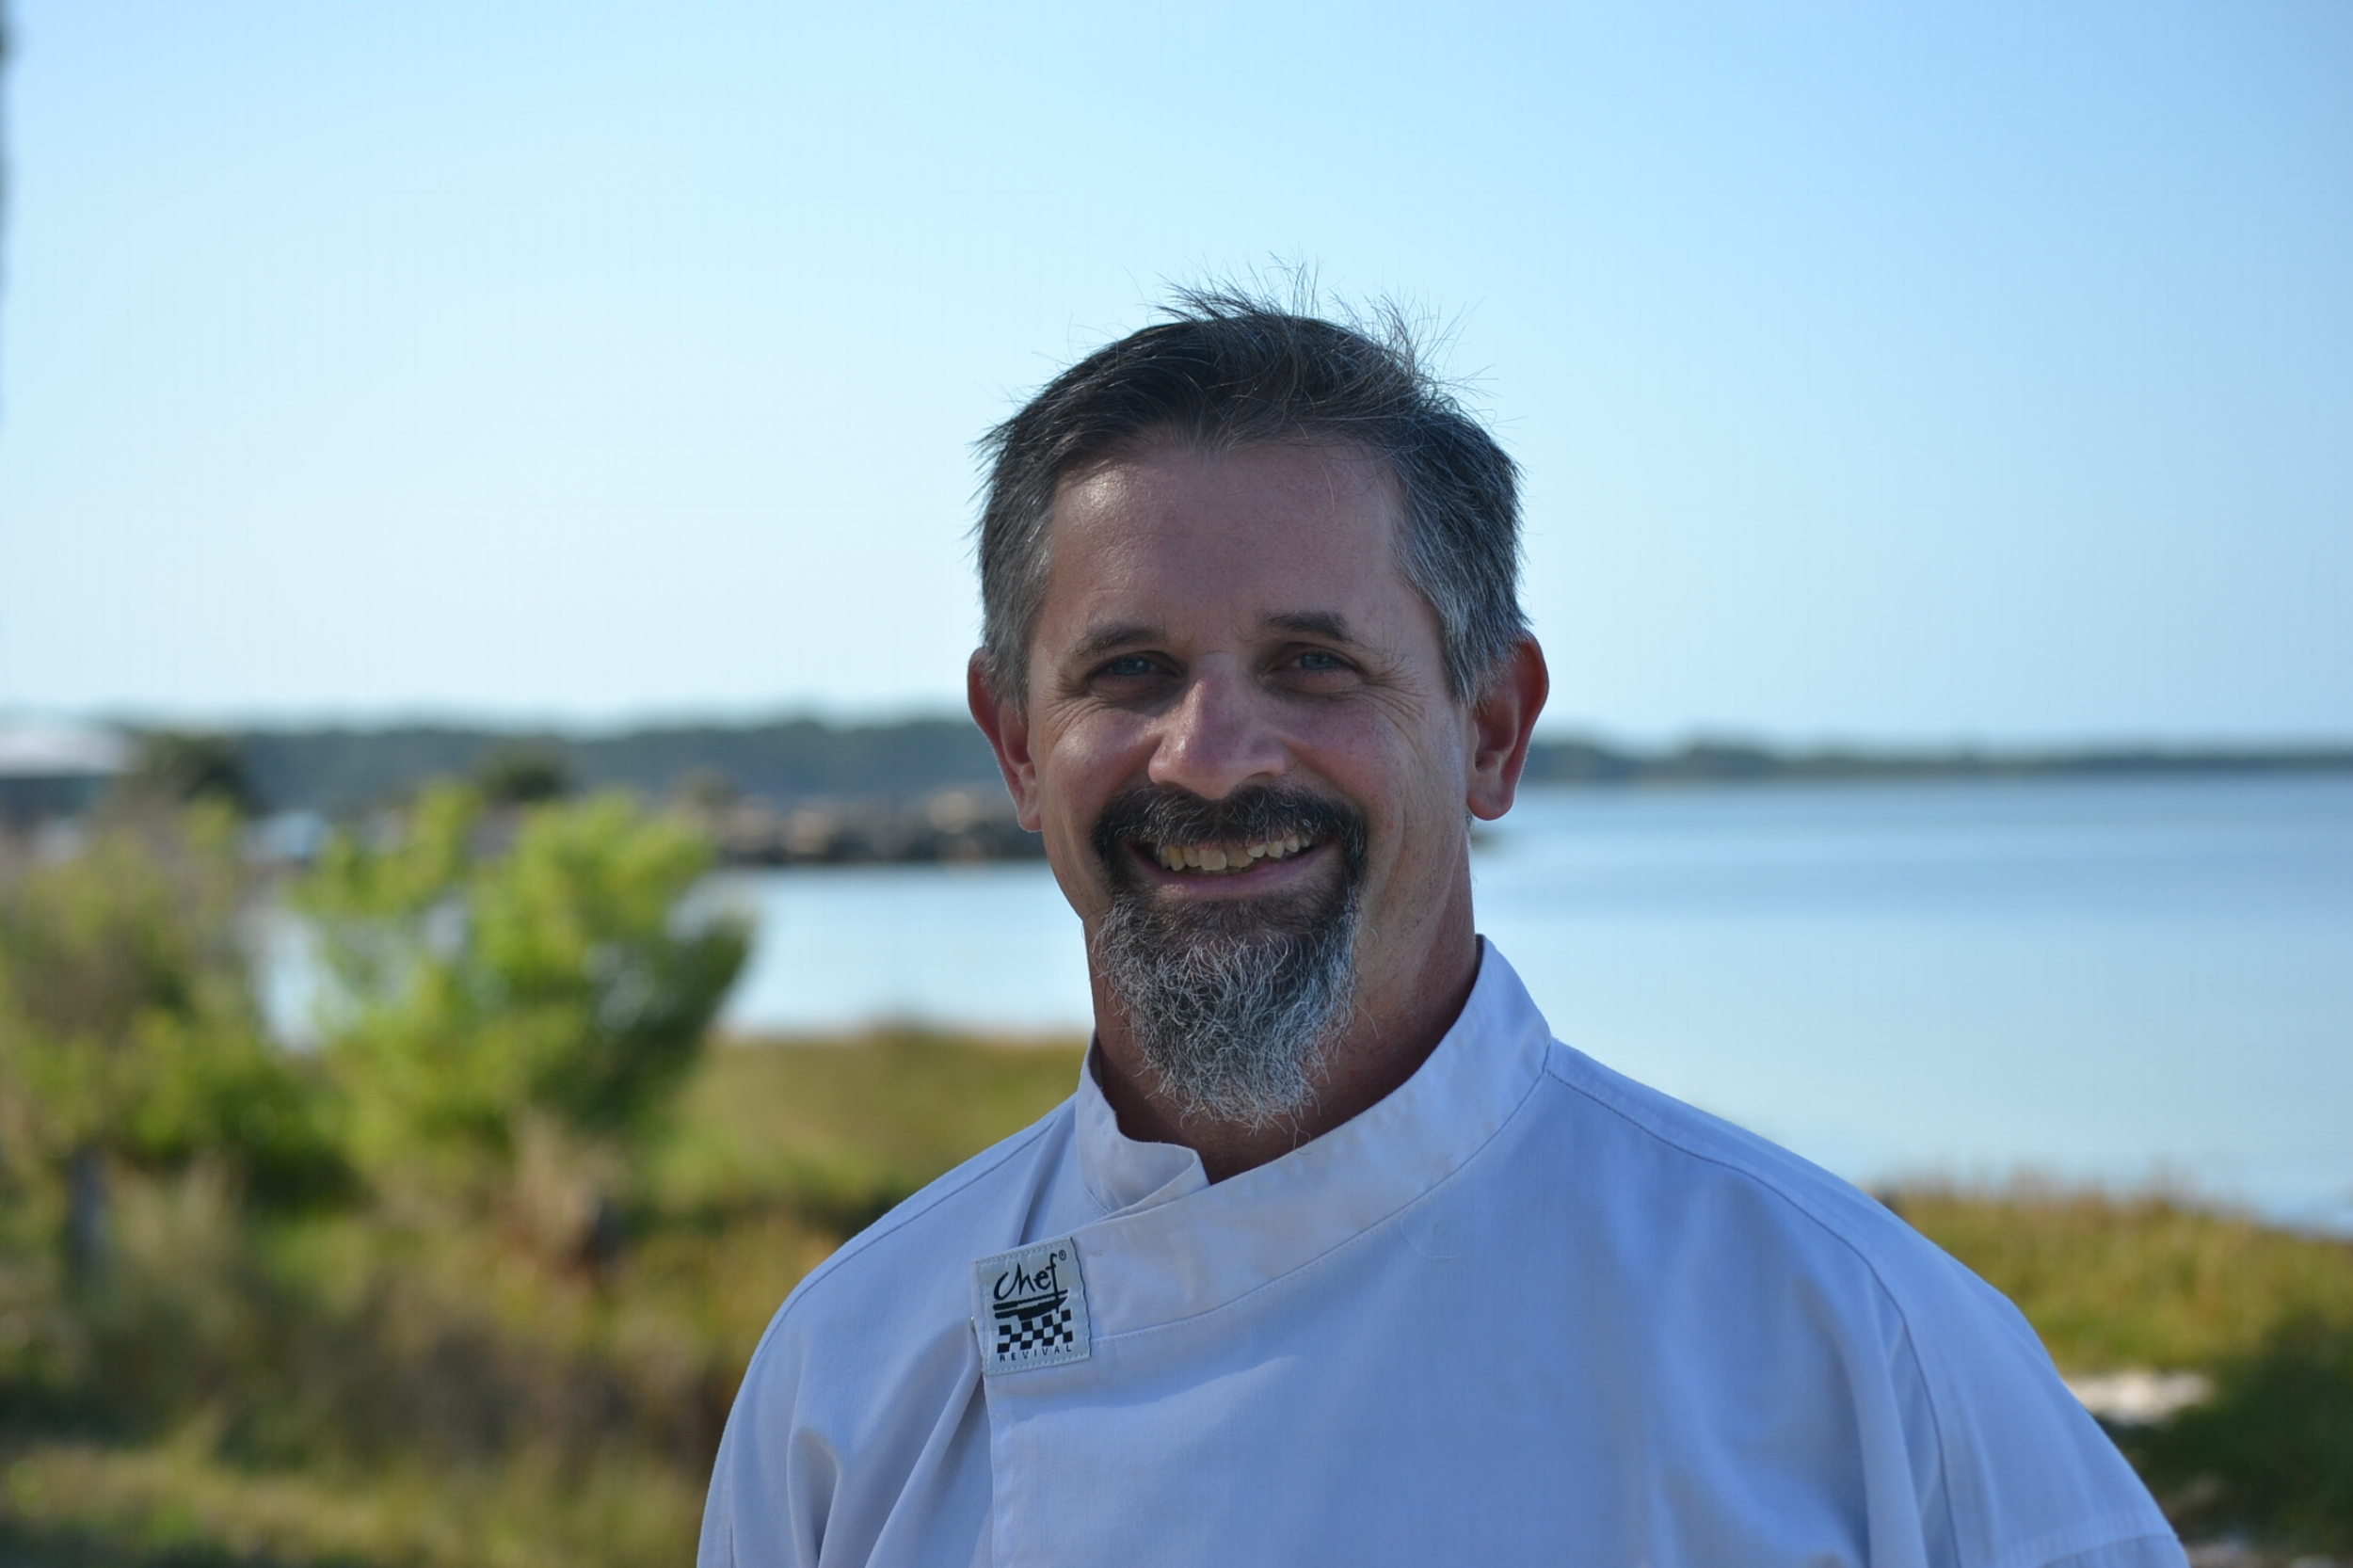 CHEF IAN WILLIAMS PROUDLY SERVING THE FORGOTTEN COAST FOR 20 YEARS.